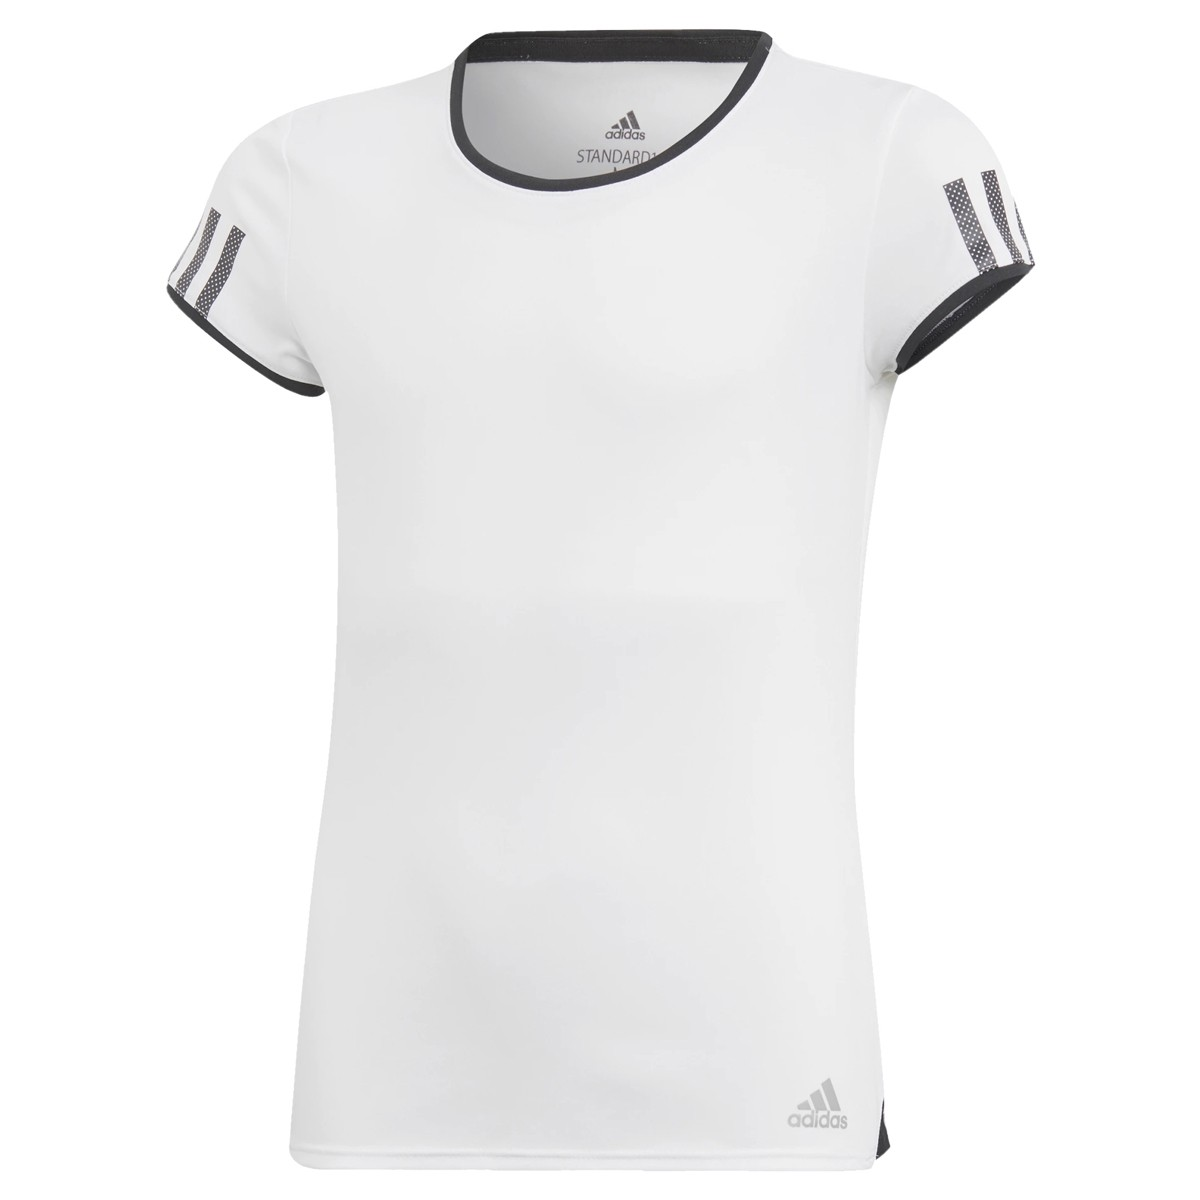 T SHIRT ADIDAS JUNIOR FILLE CLUB ADIDAS Junior